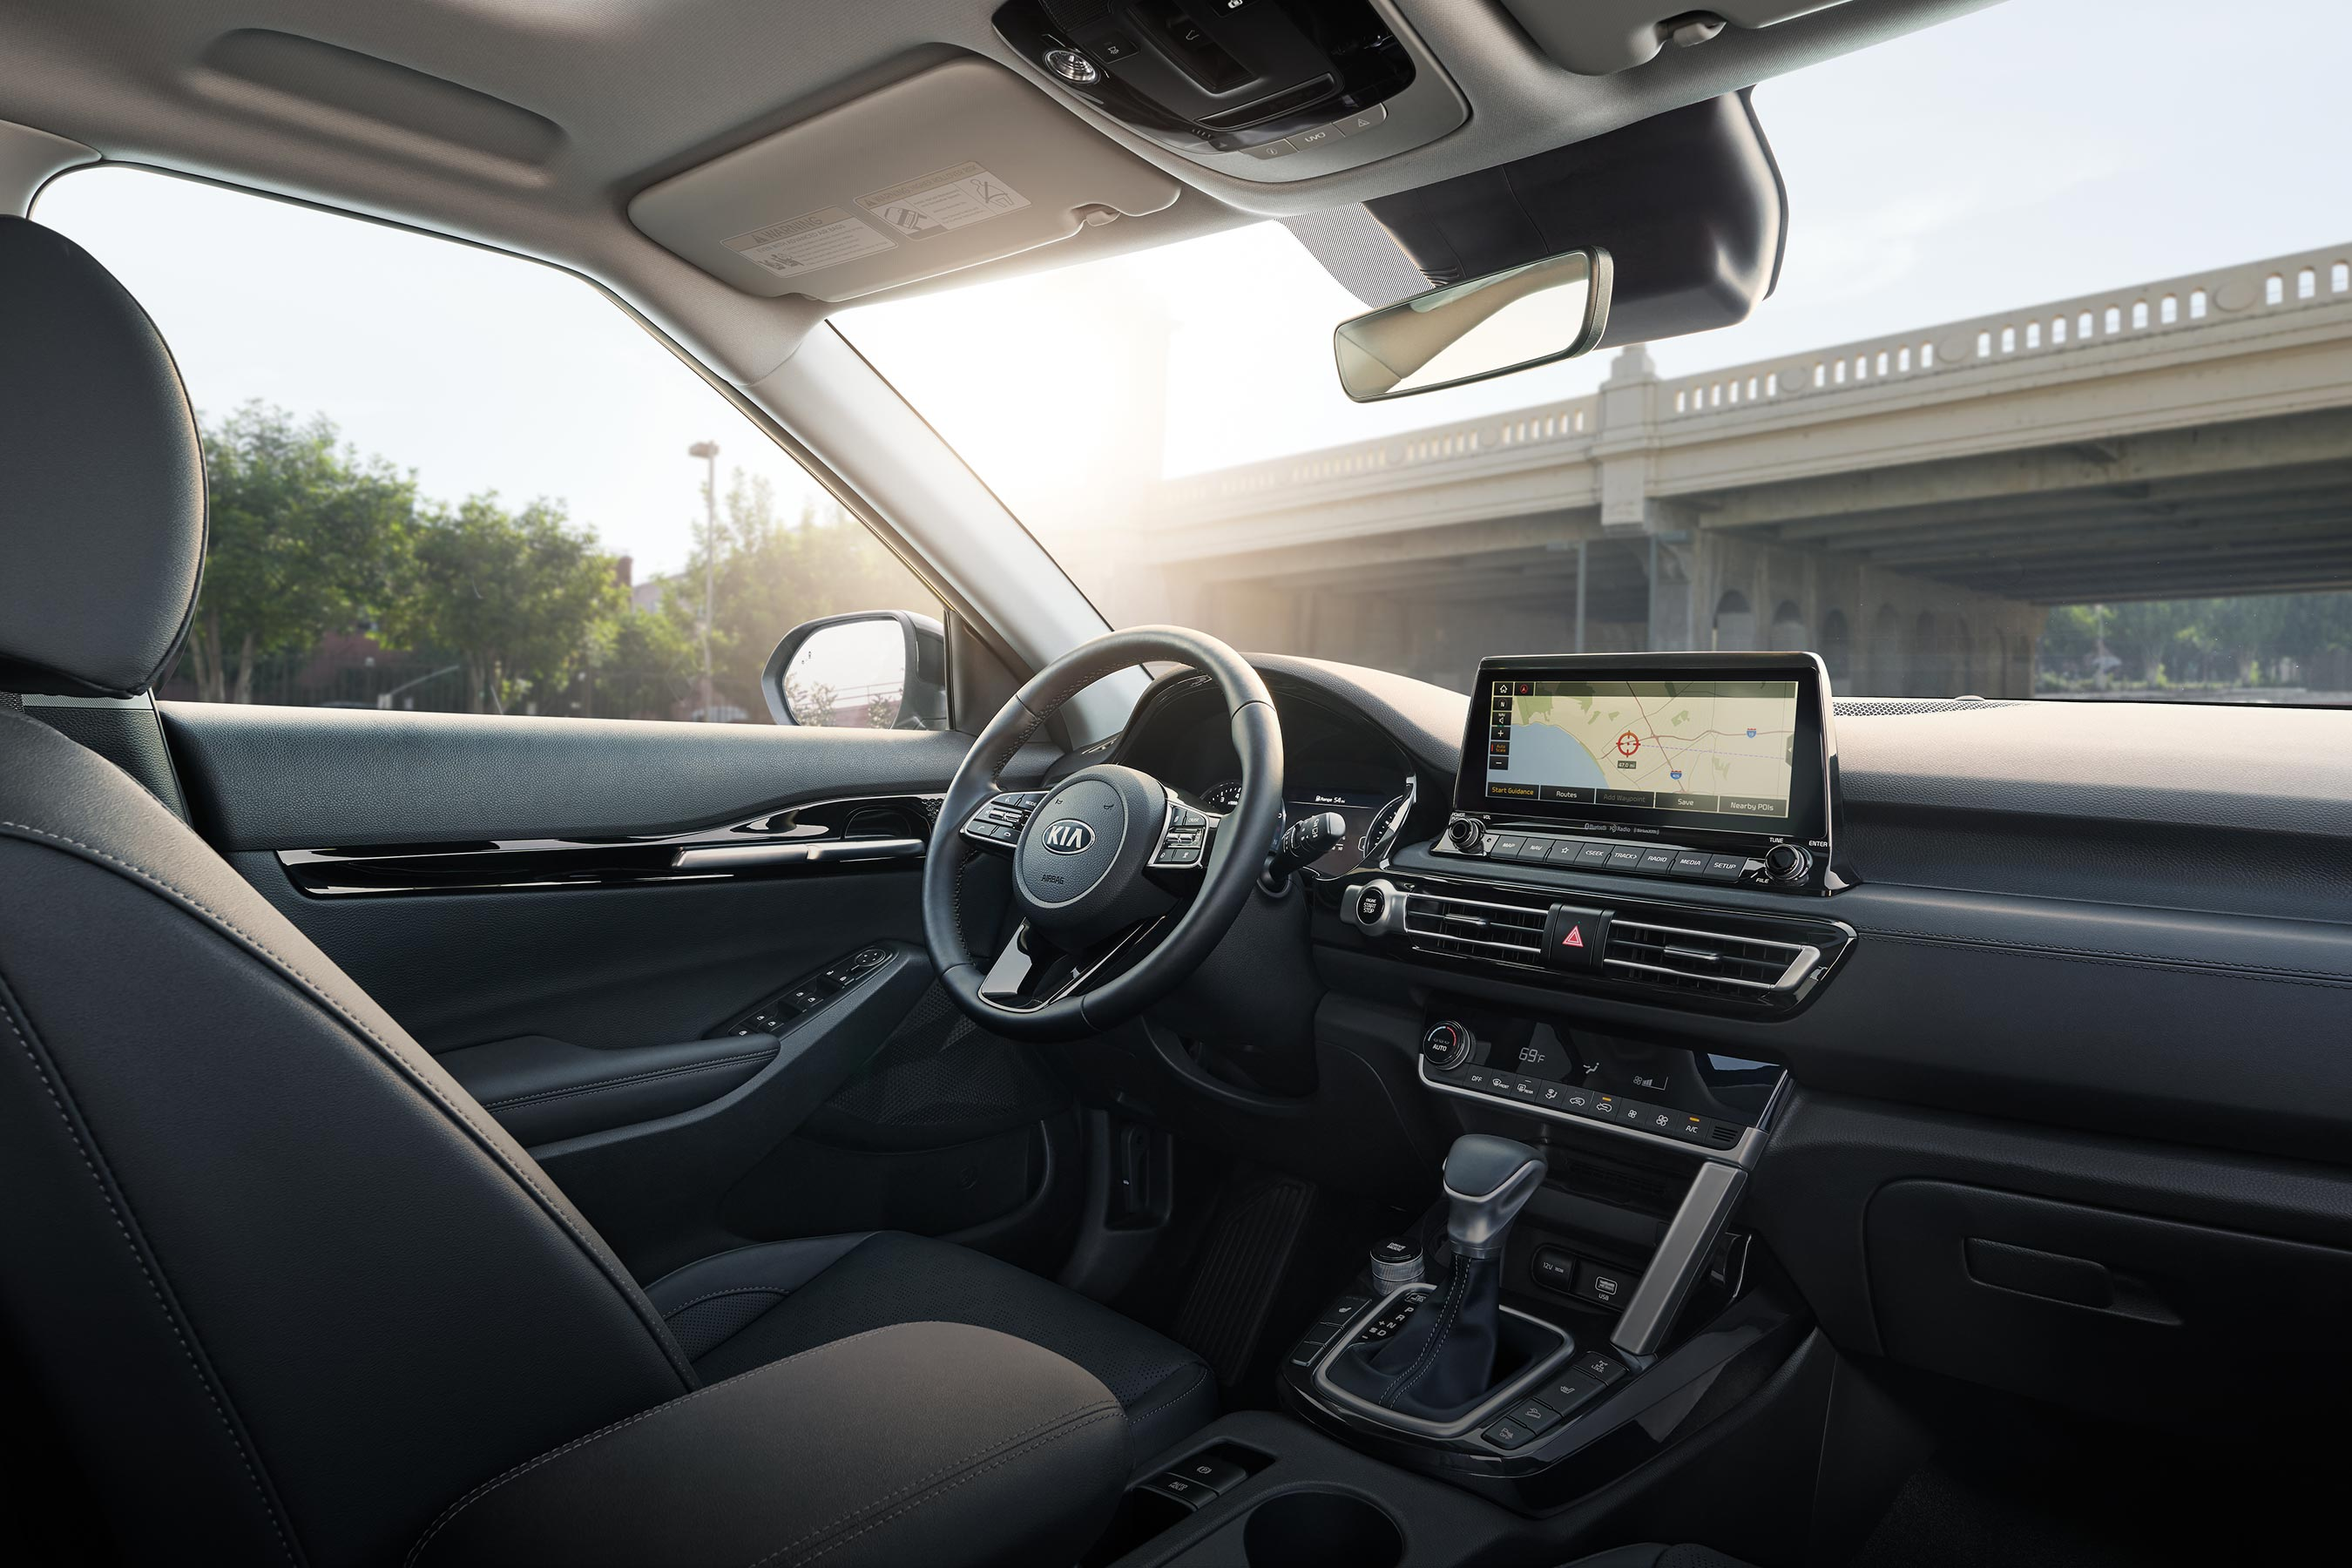 Interior of the 2021 Kia Seltos